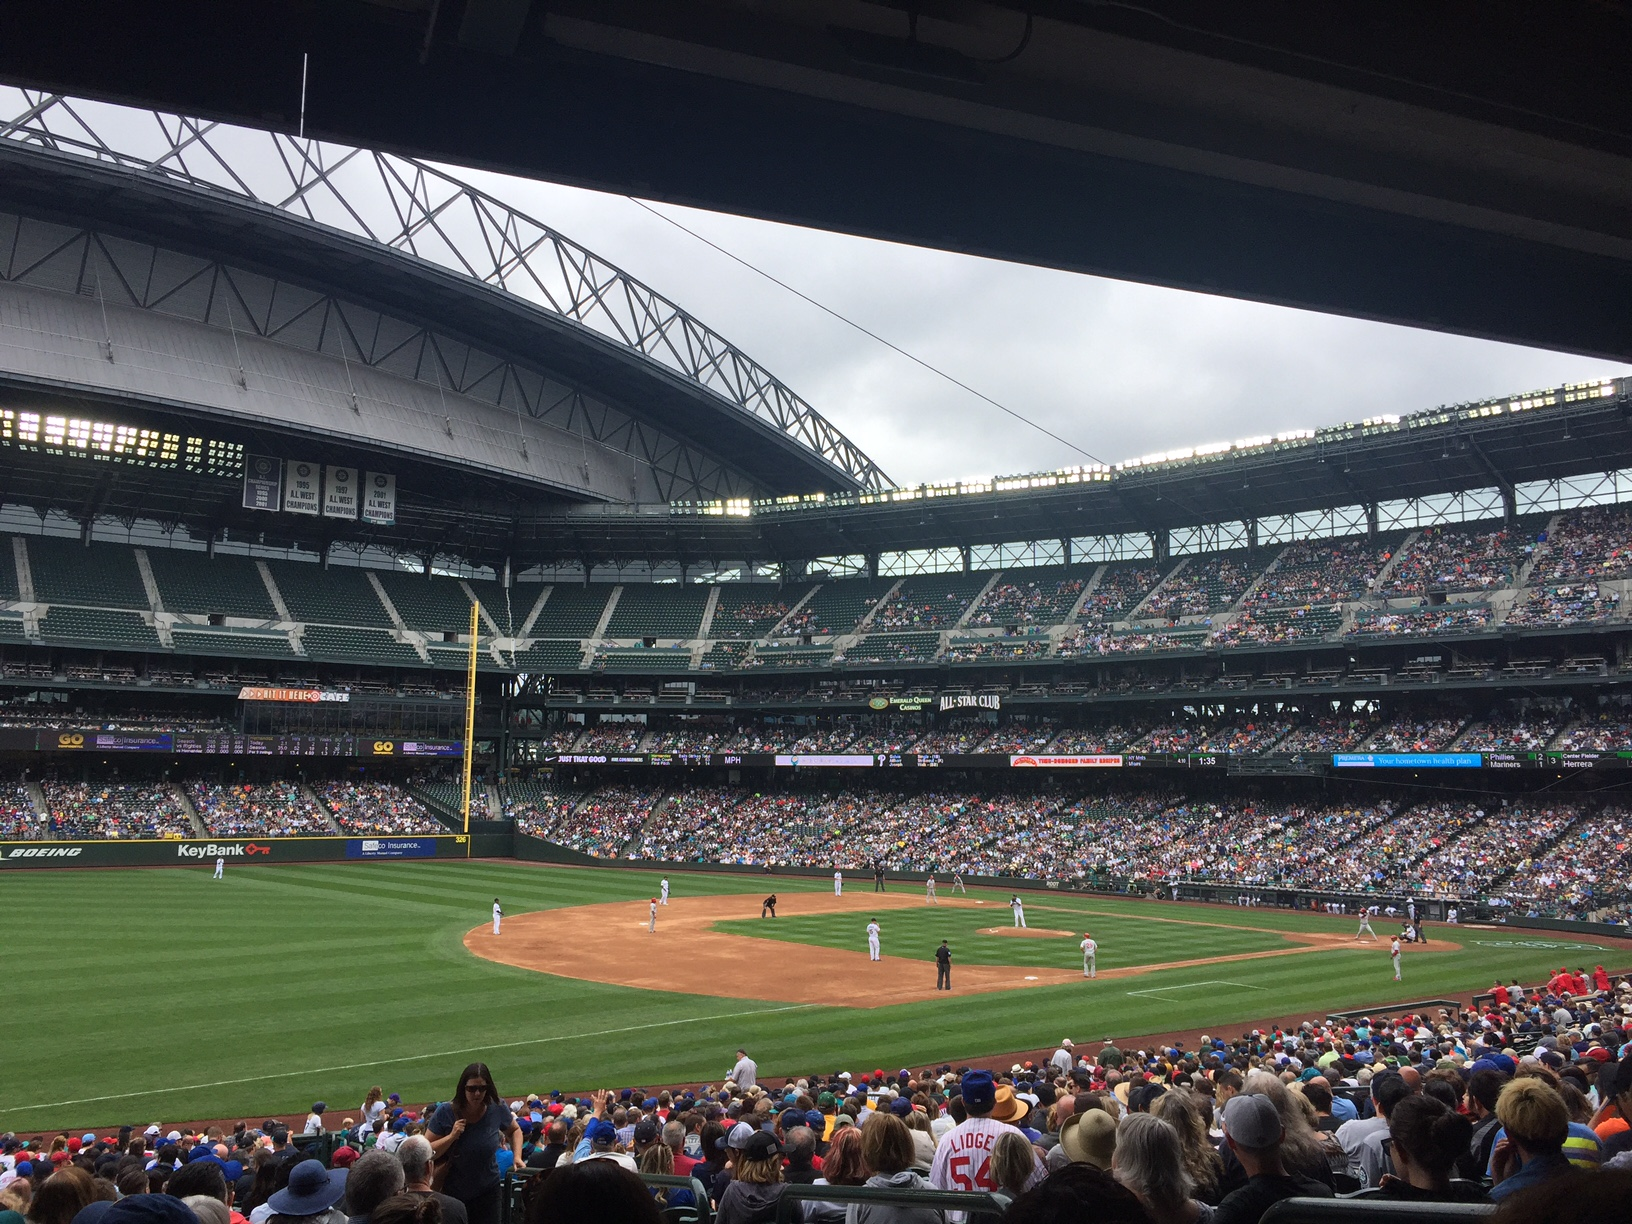 The ladies' vantage point for the Mariners' matinee